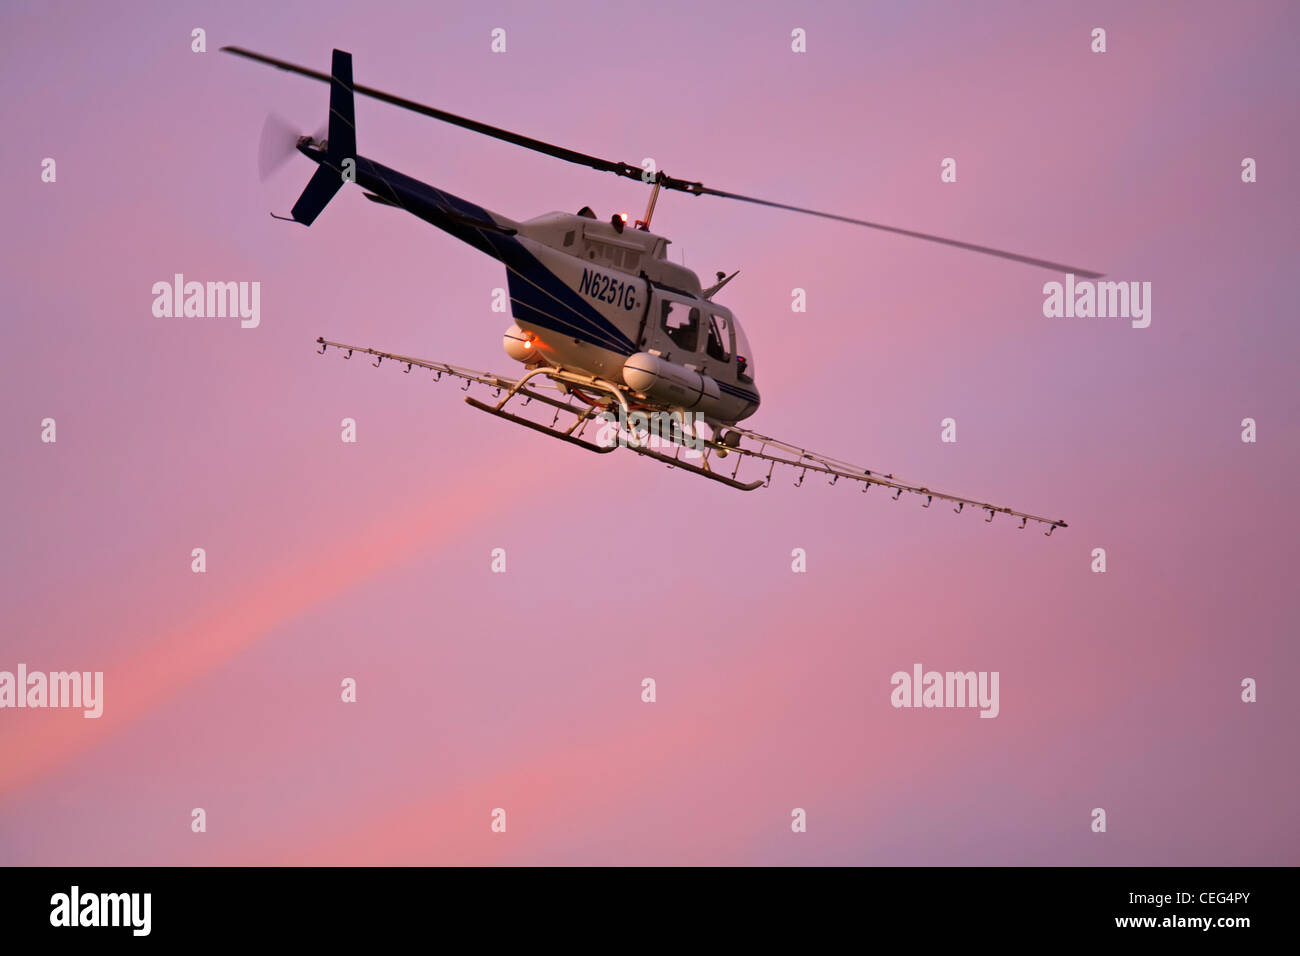 Holtville, California - A helicopter on a crop dusting flight in the Imperical Valley. - Stock Image